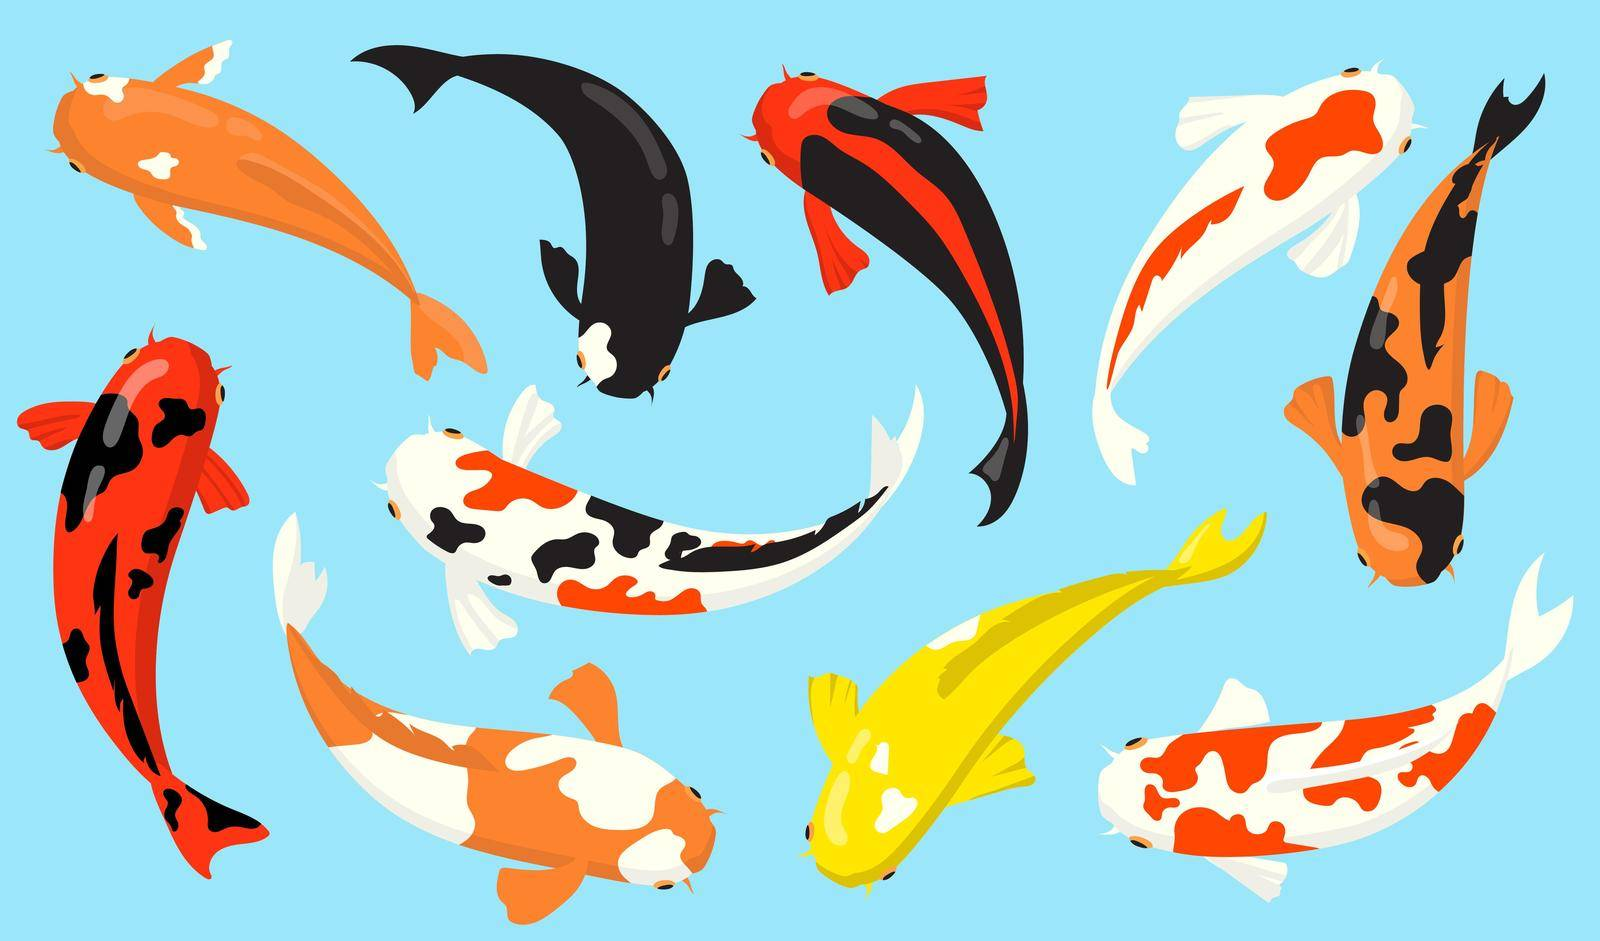 Top view of koi carp fishes flat icon set. Chinese or Japanese traditional goldfishes vector illustration collection. Zen, water and garden concept